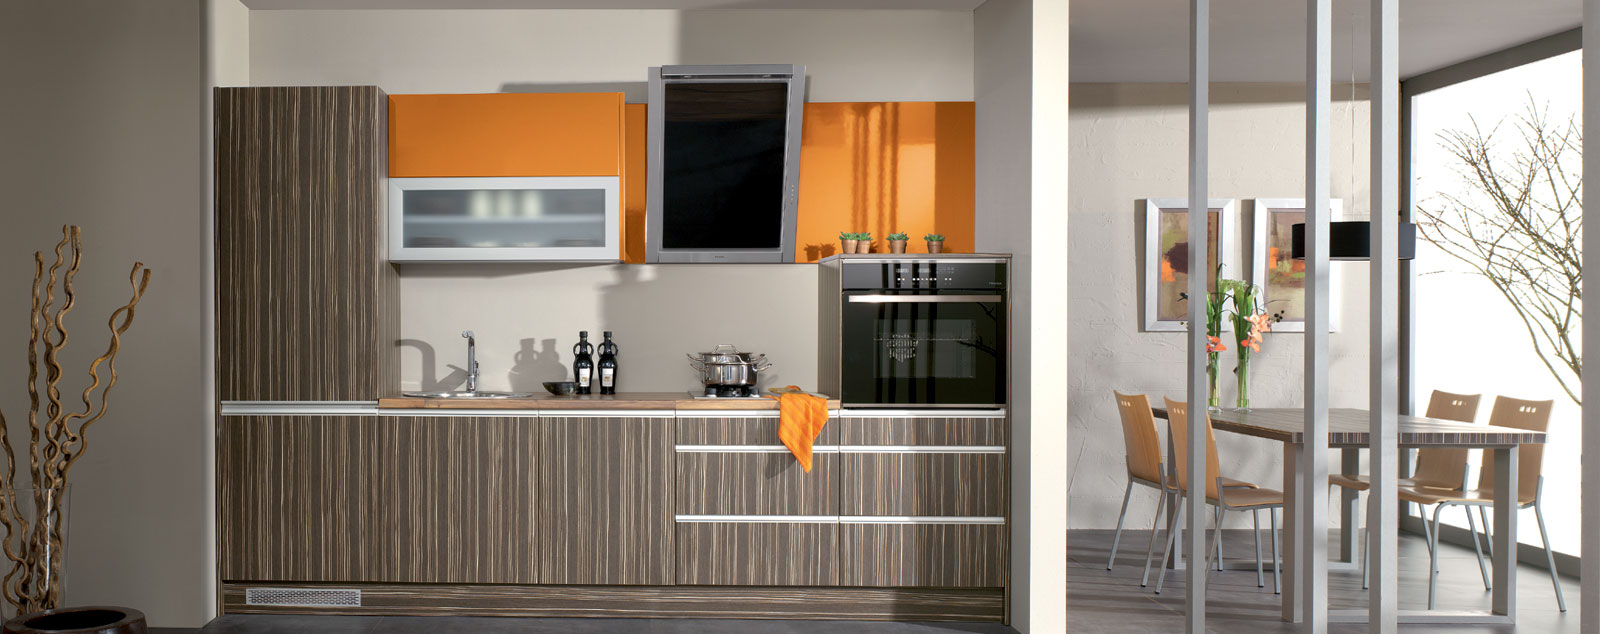 More Kitchen From Kitchen By Design Hyderabad